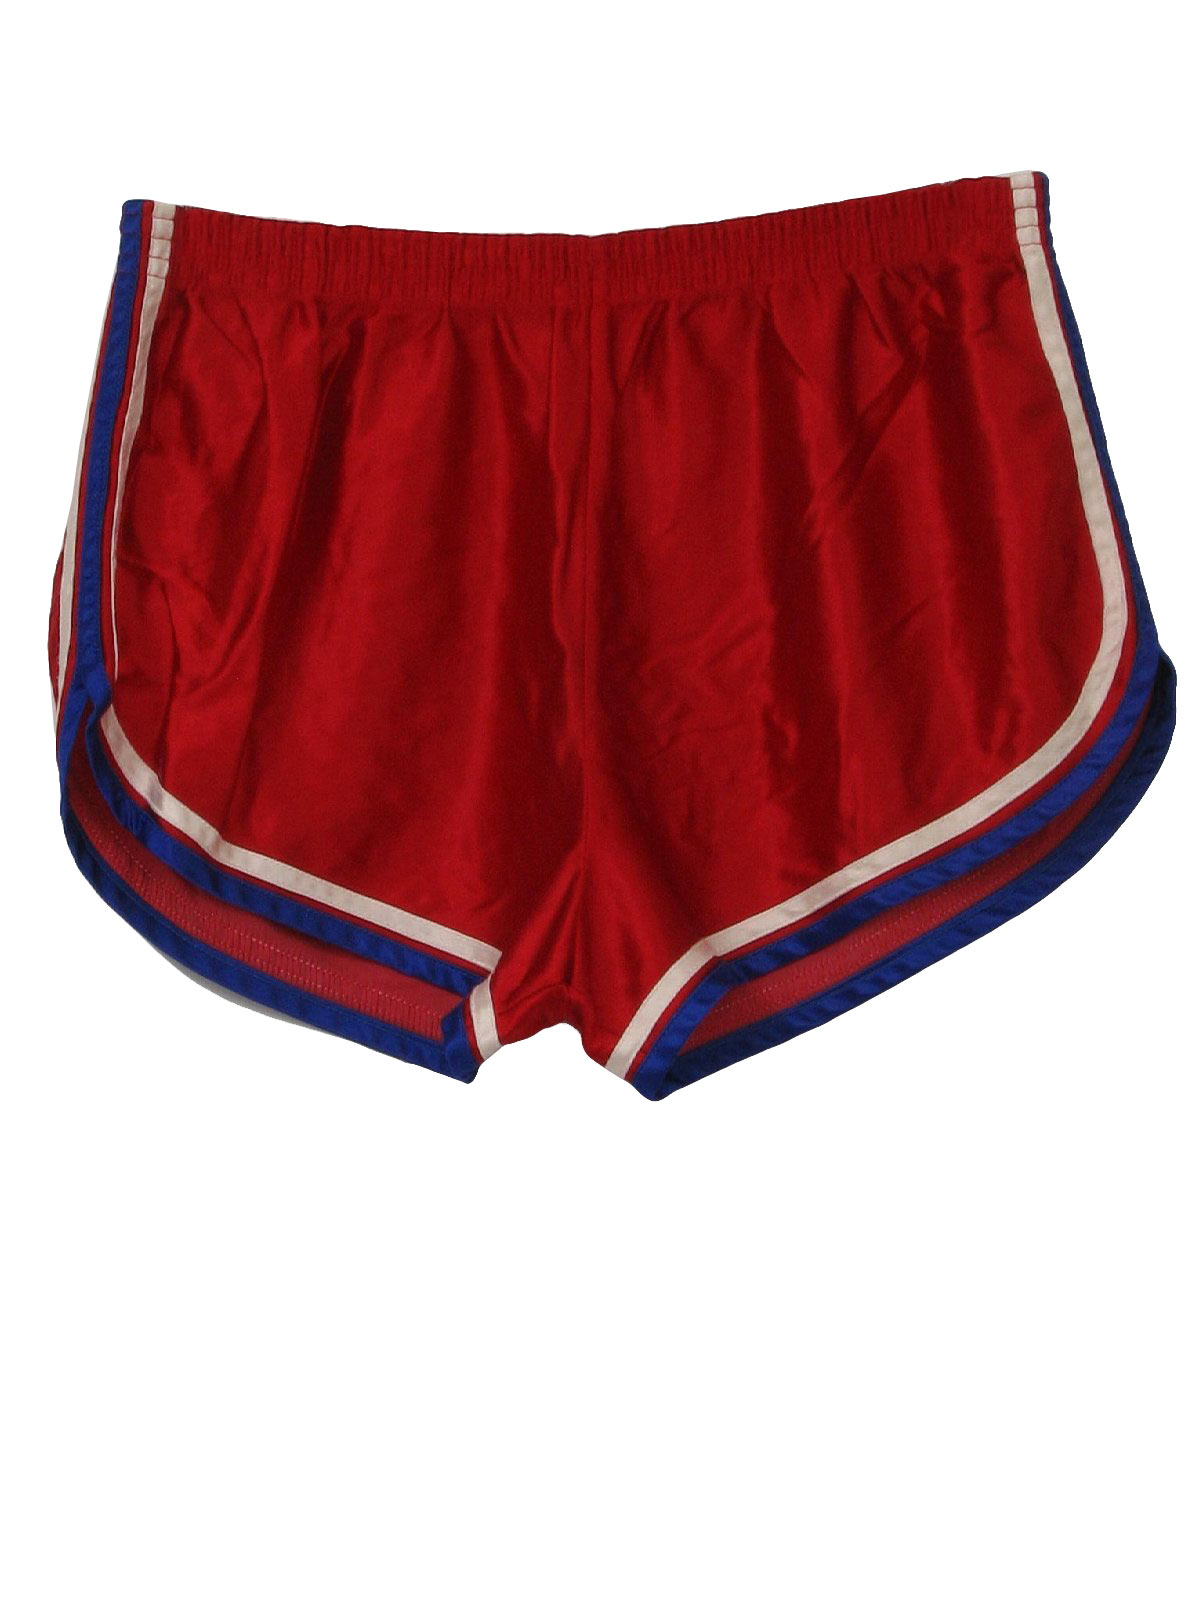 Care Label 80 S Vintage Shorts 80s Care Label Mens Red White And